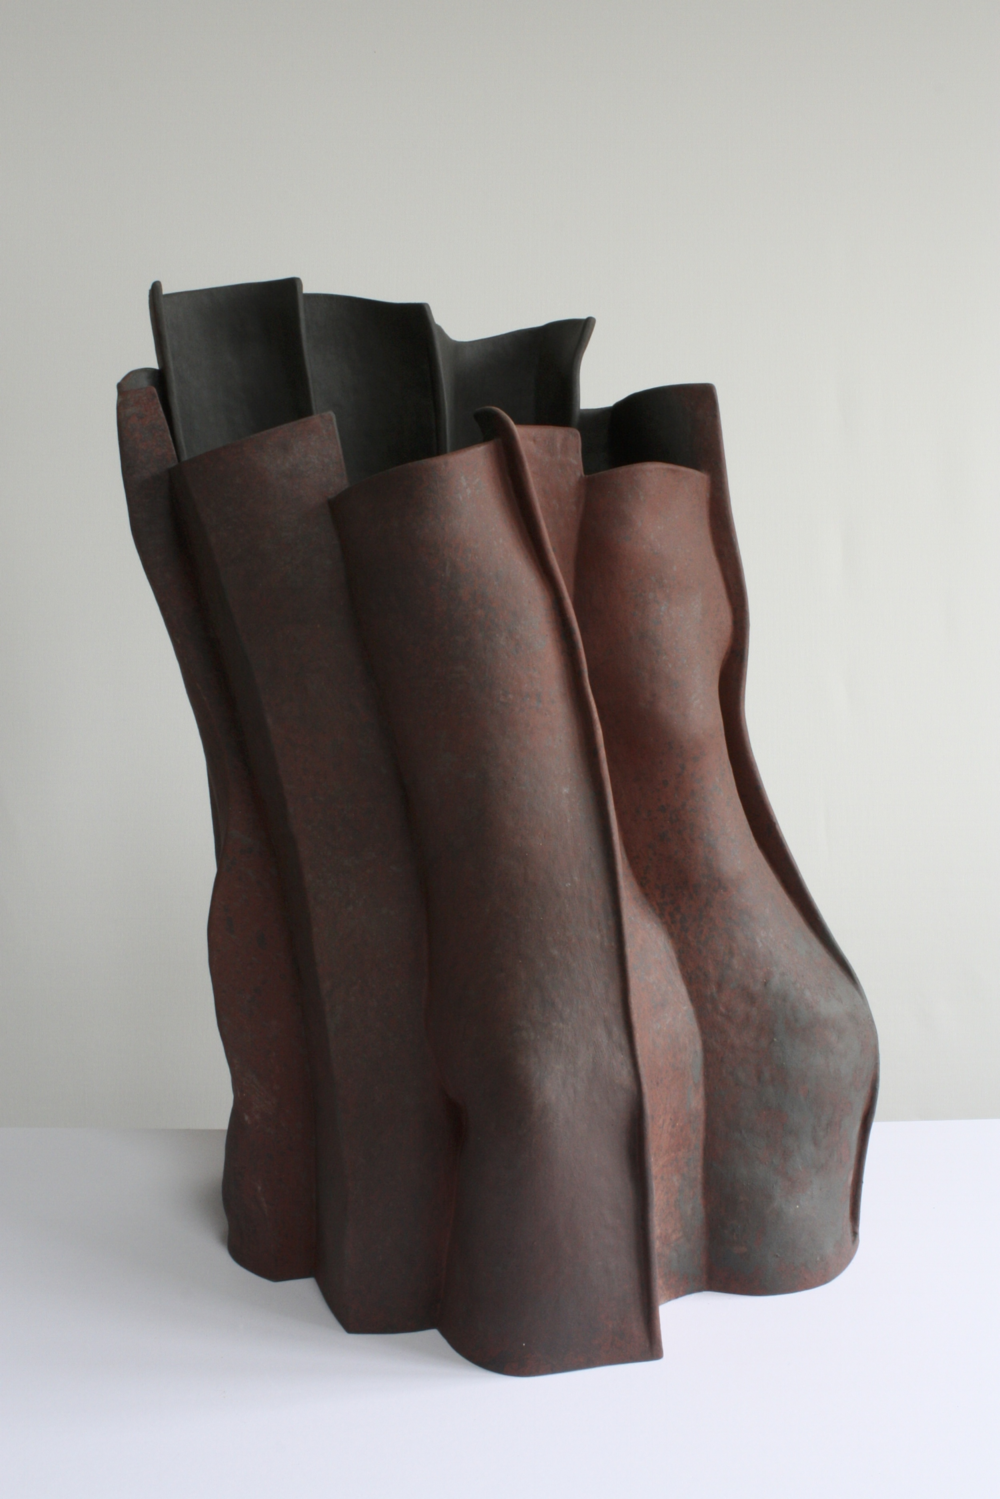 Long fridays, 2009, 51cm high